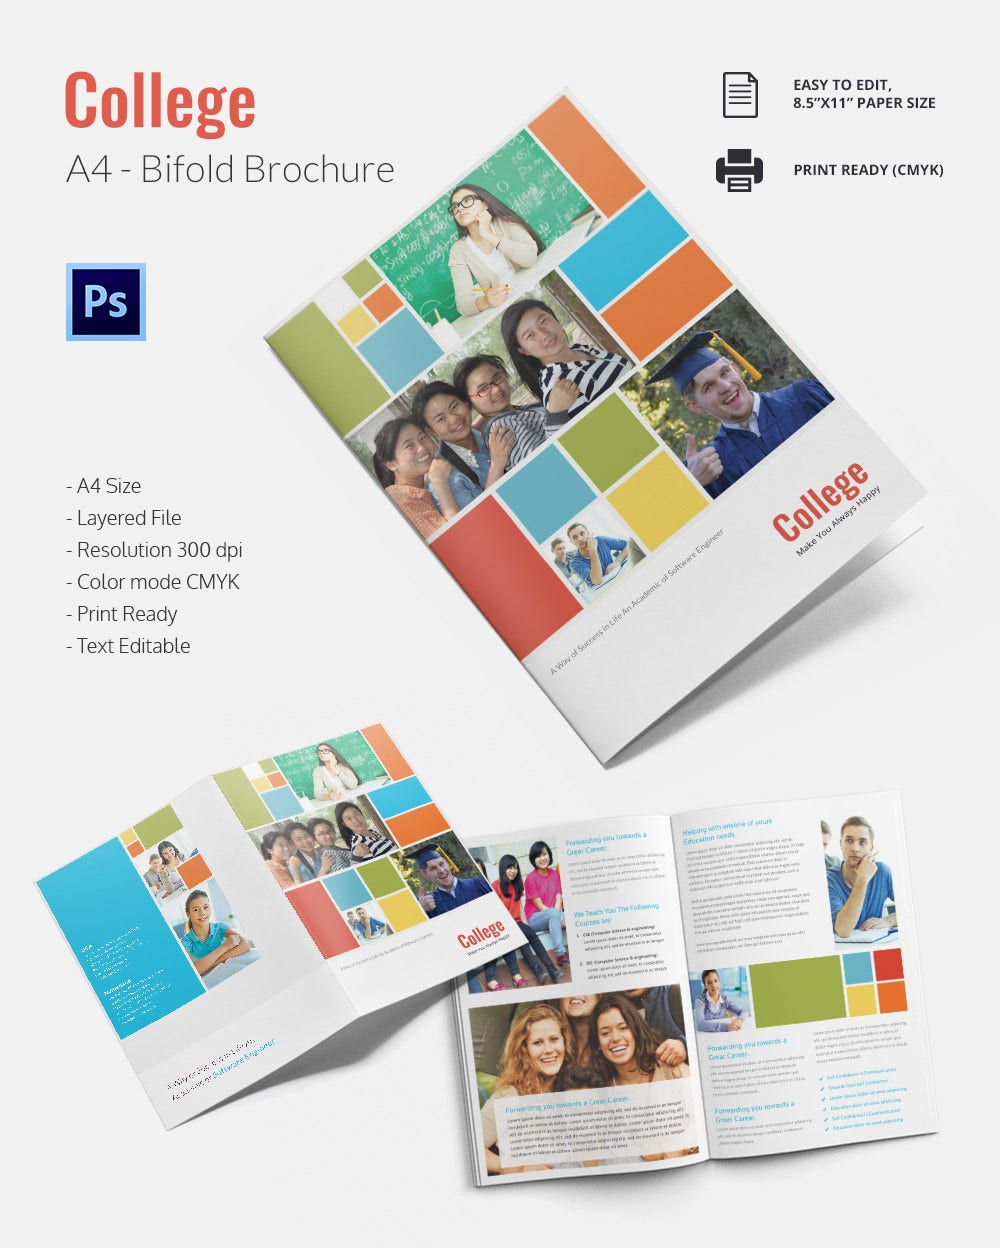 College brochure template 34 free jpg psd indesign for College brochure design pdf